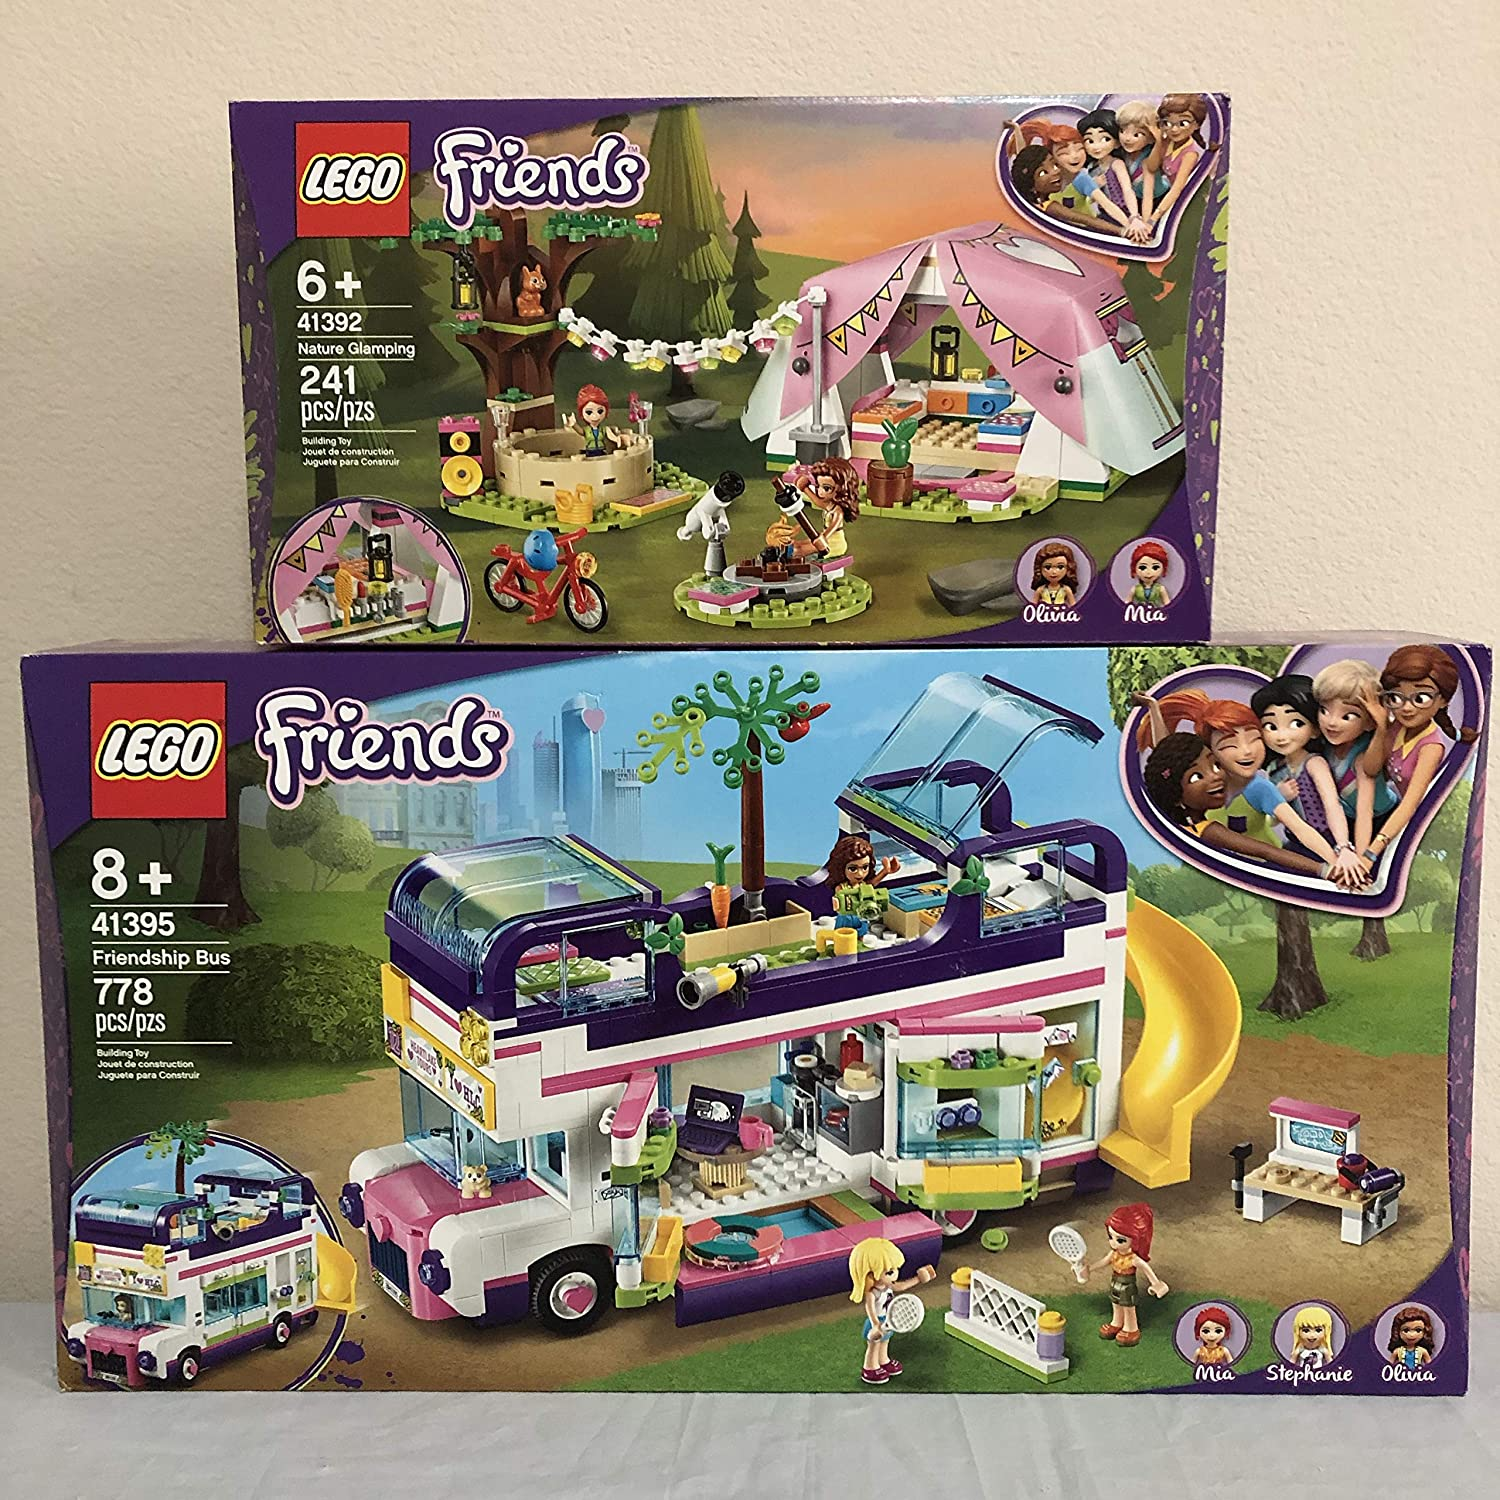 Lego Friends Friendship Bus 41395 Bundle with Lego Friends Nature Glamping 41392 Building Kit: Toys & Games